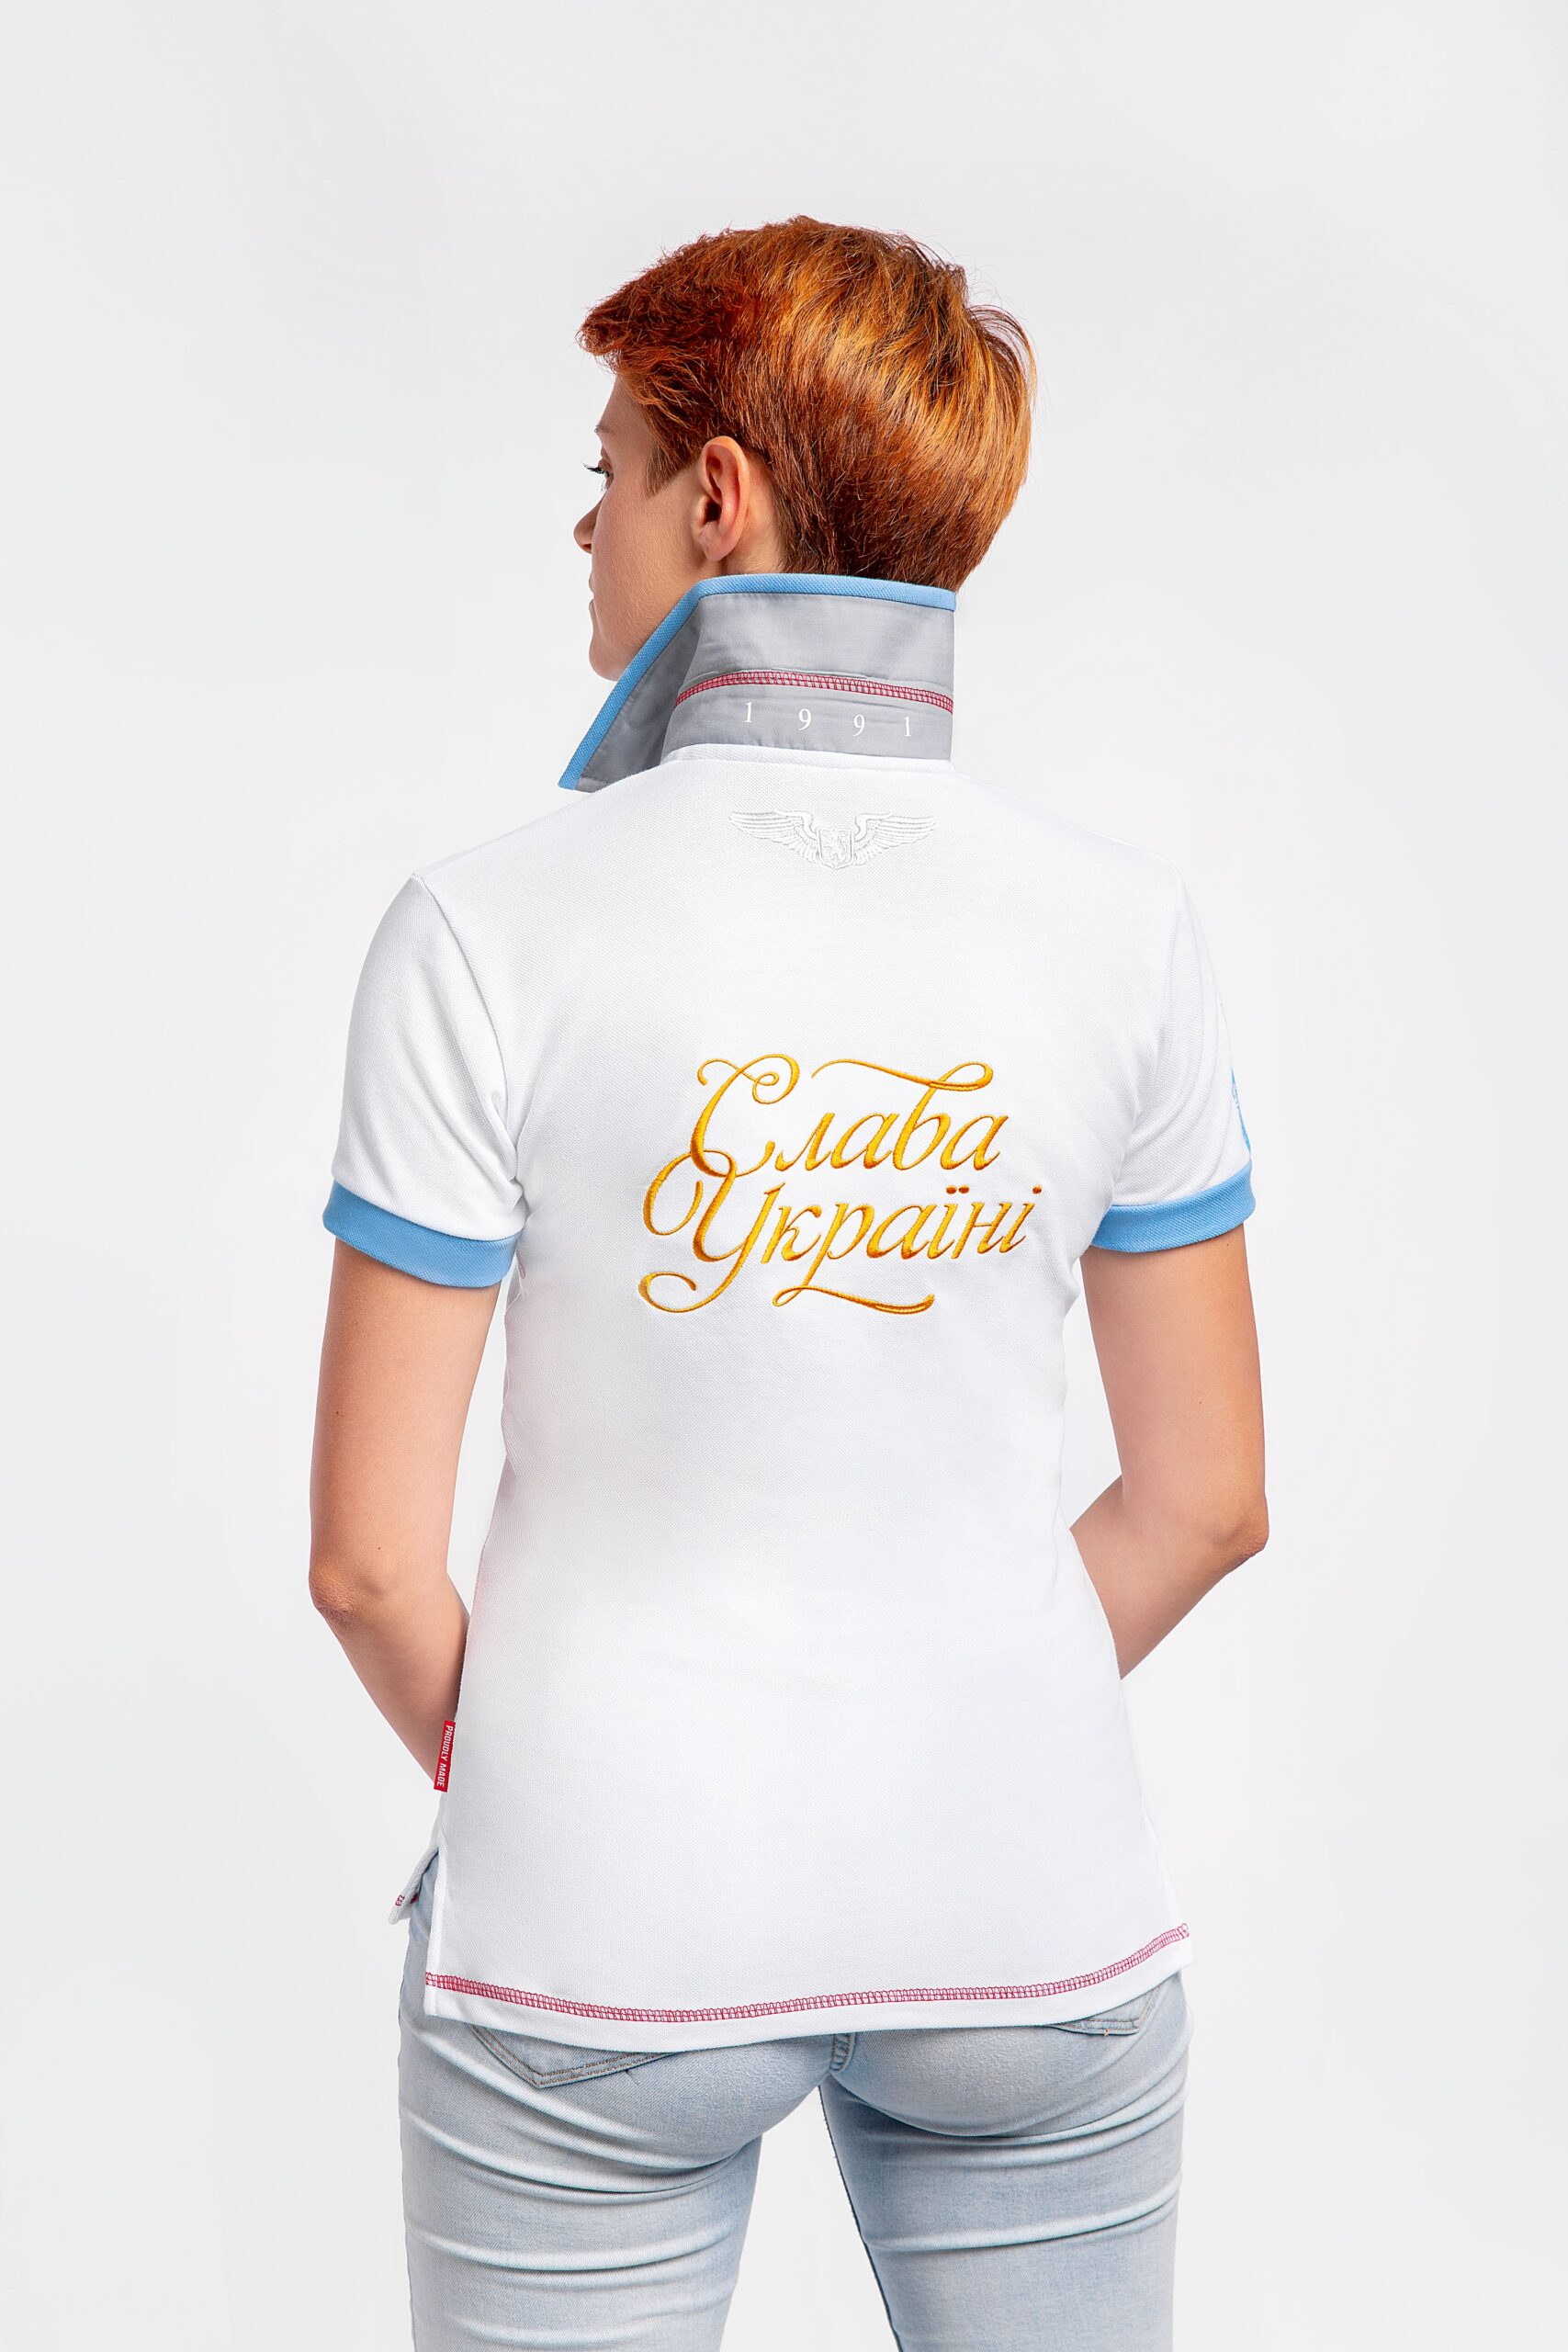 Women'S Polo 30 Years Of Independence. Color white.  Size worn by the model: XS.